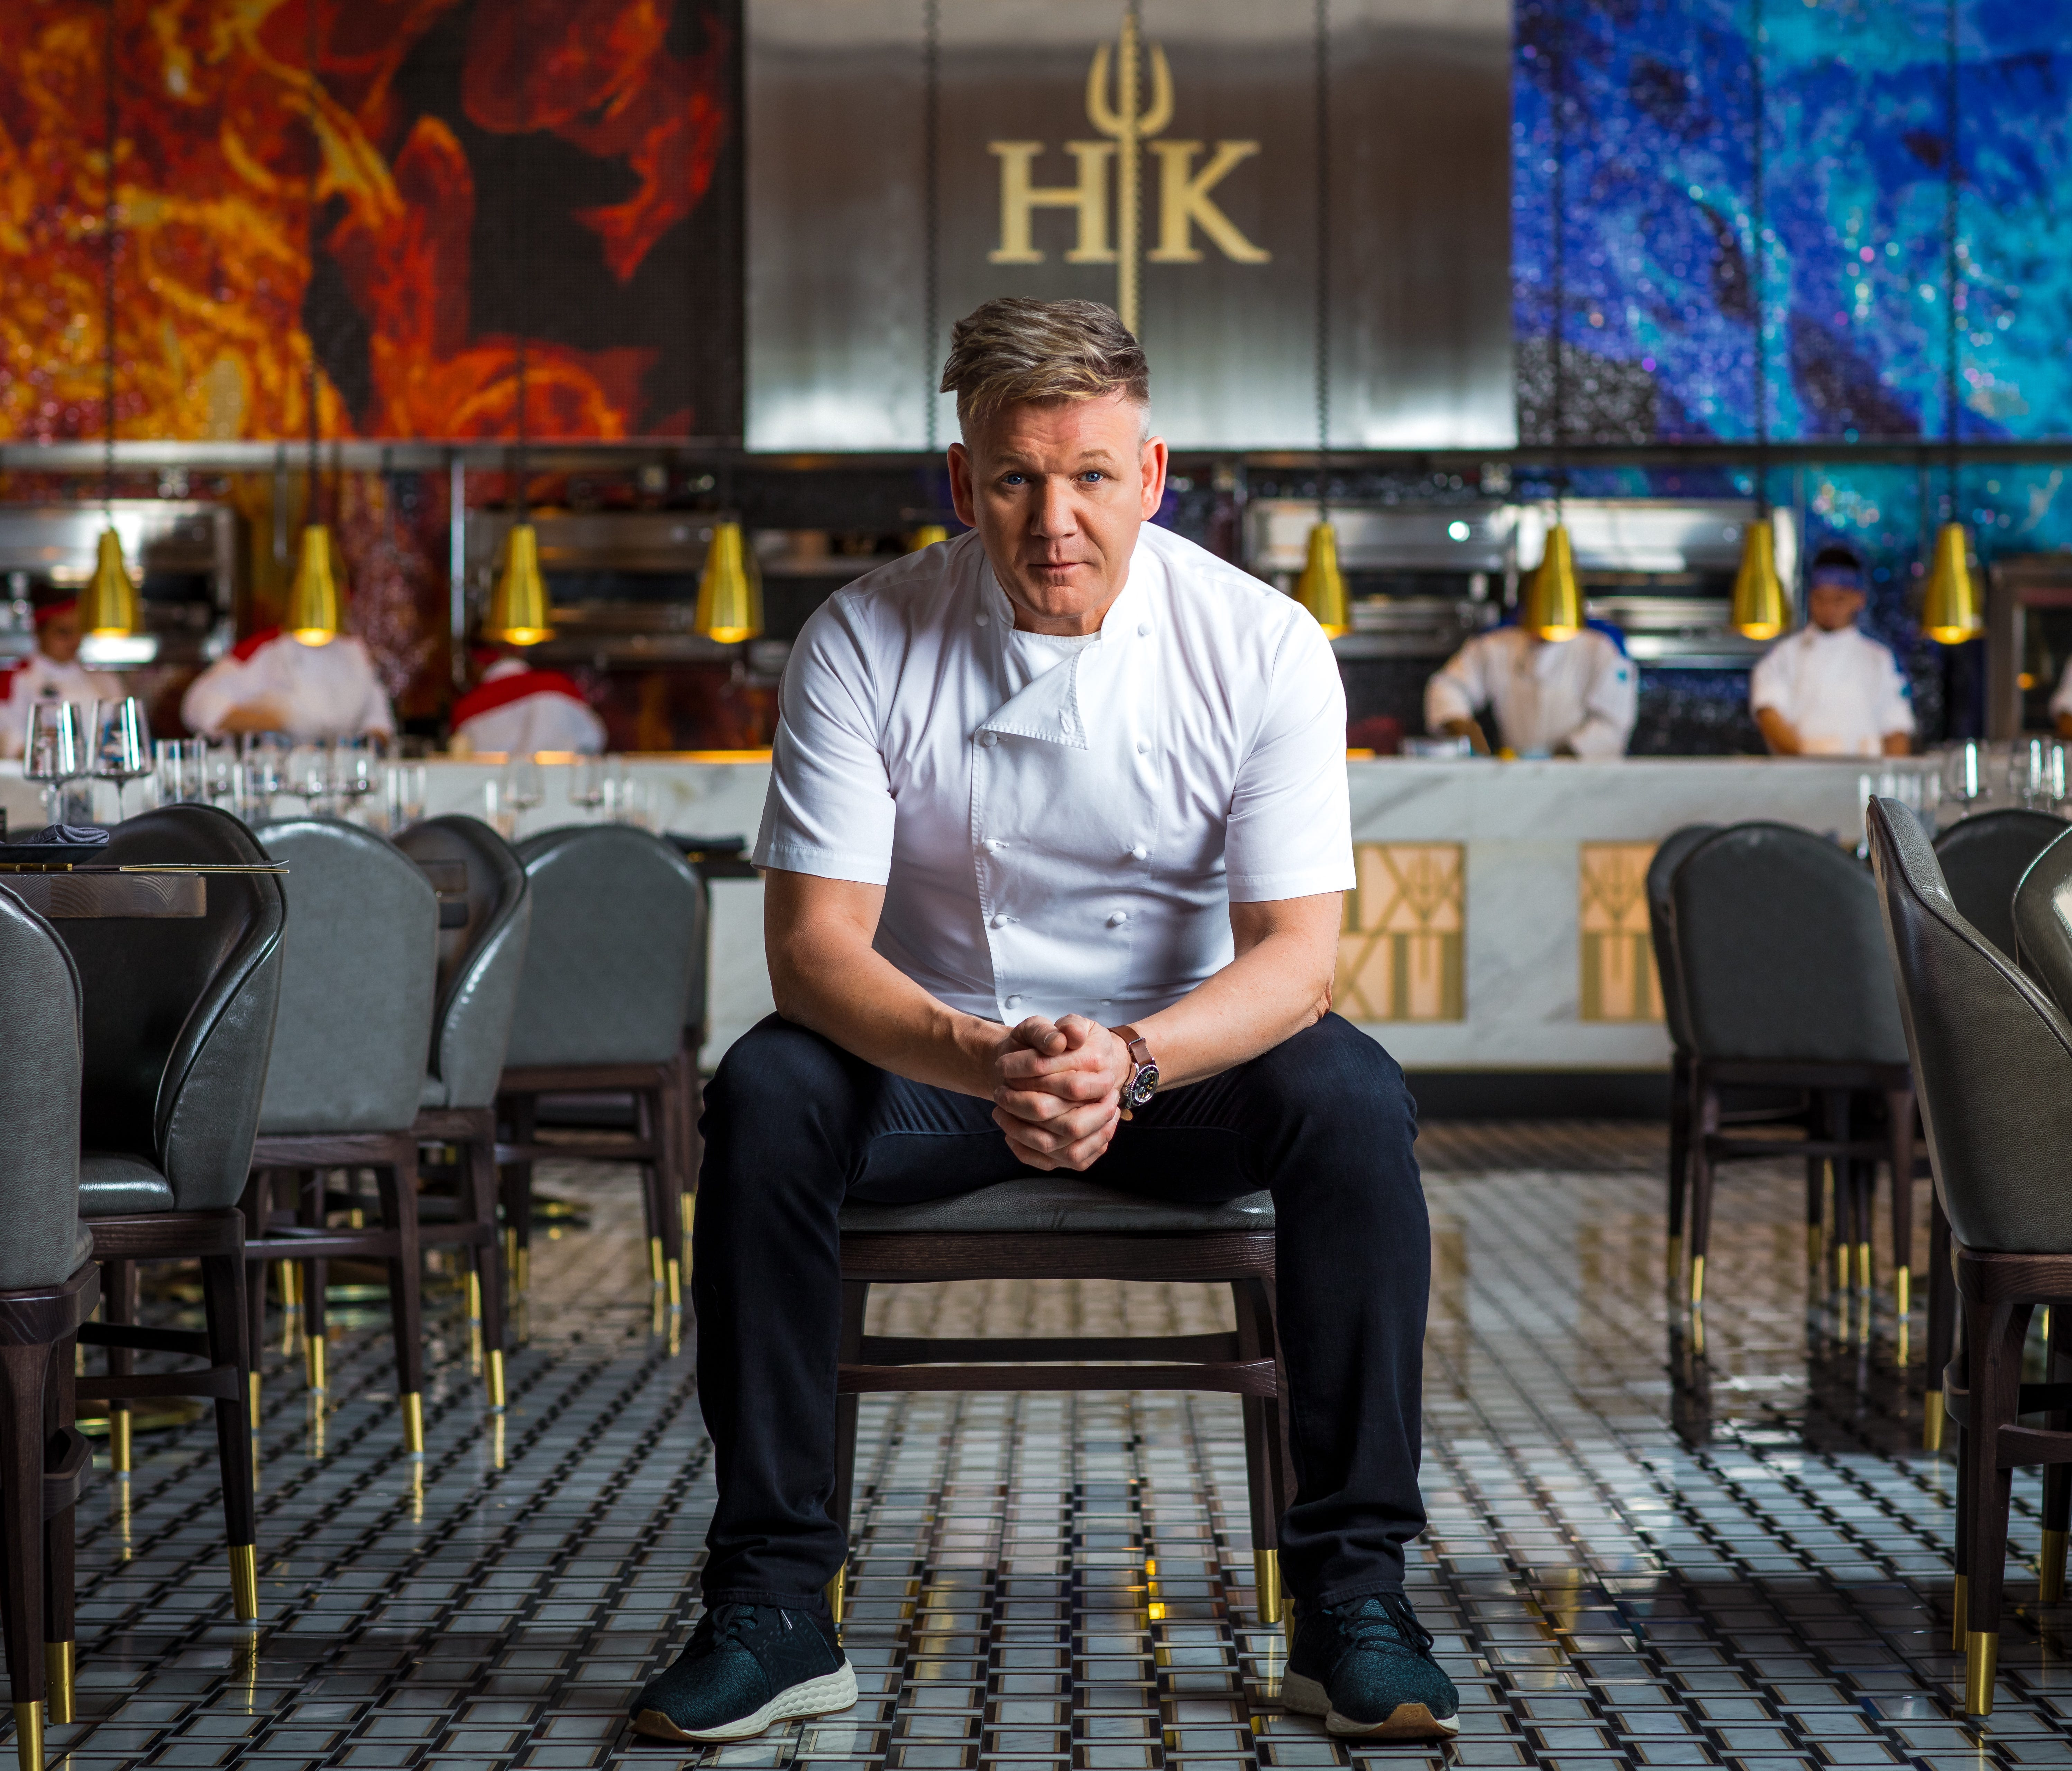 Gordon Ramsay's first Hell's Kitchen restaurant opened at Caesars Palace in Las Vegas on January 16.